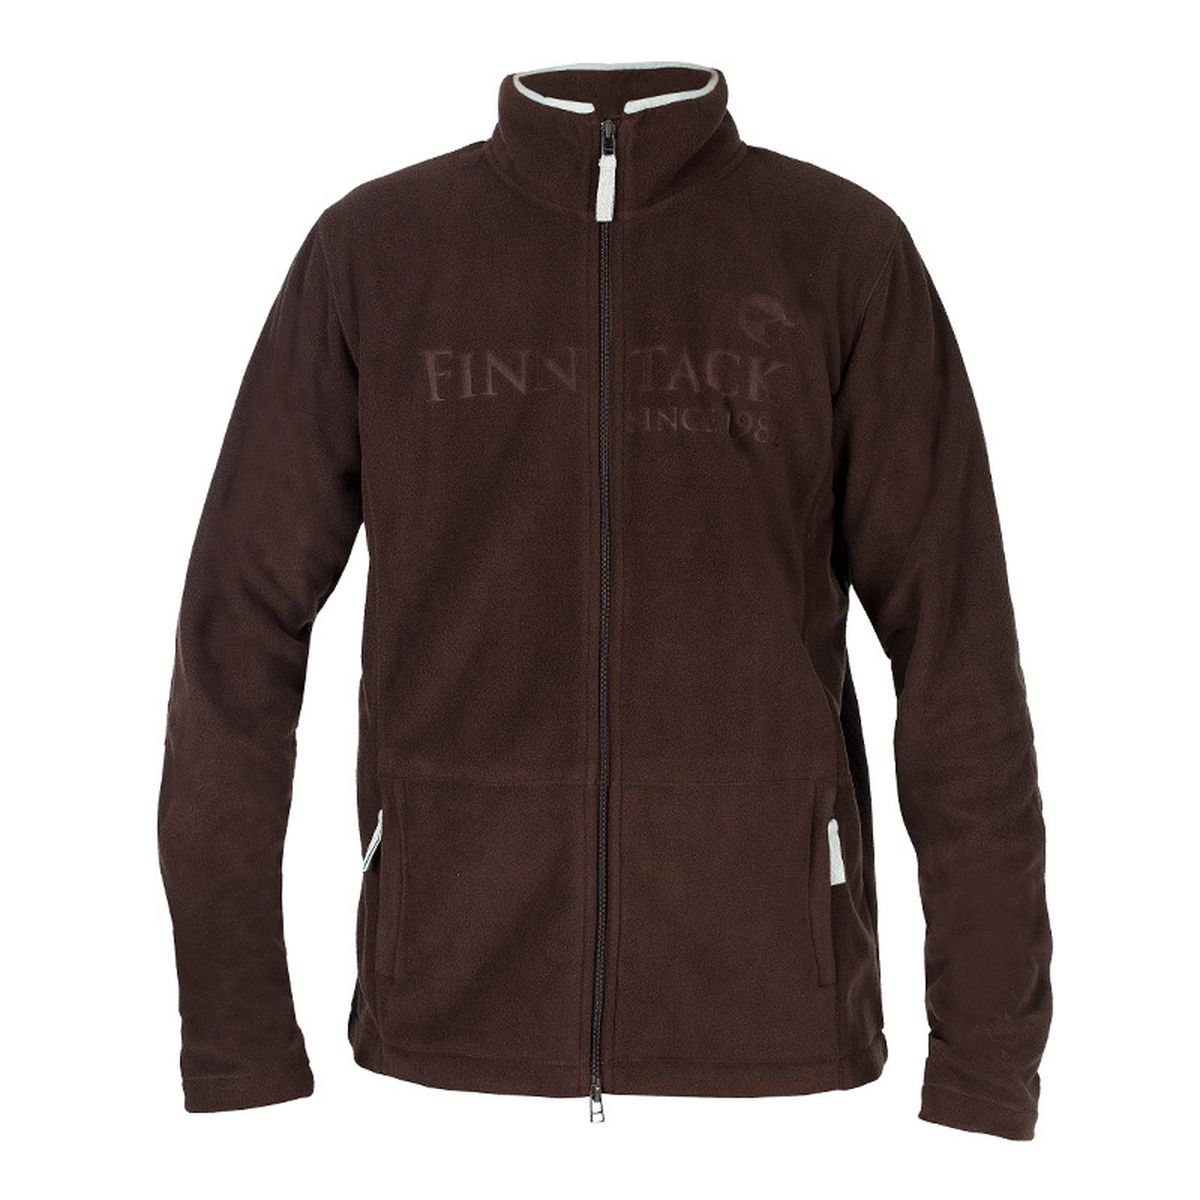 Finn Tack Fleece Jacket